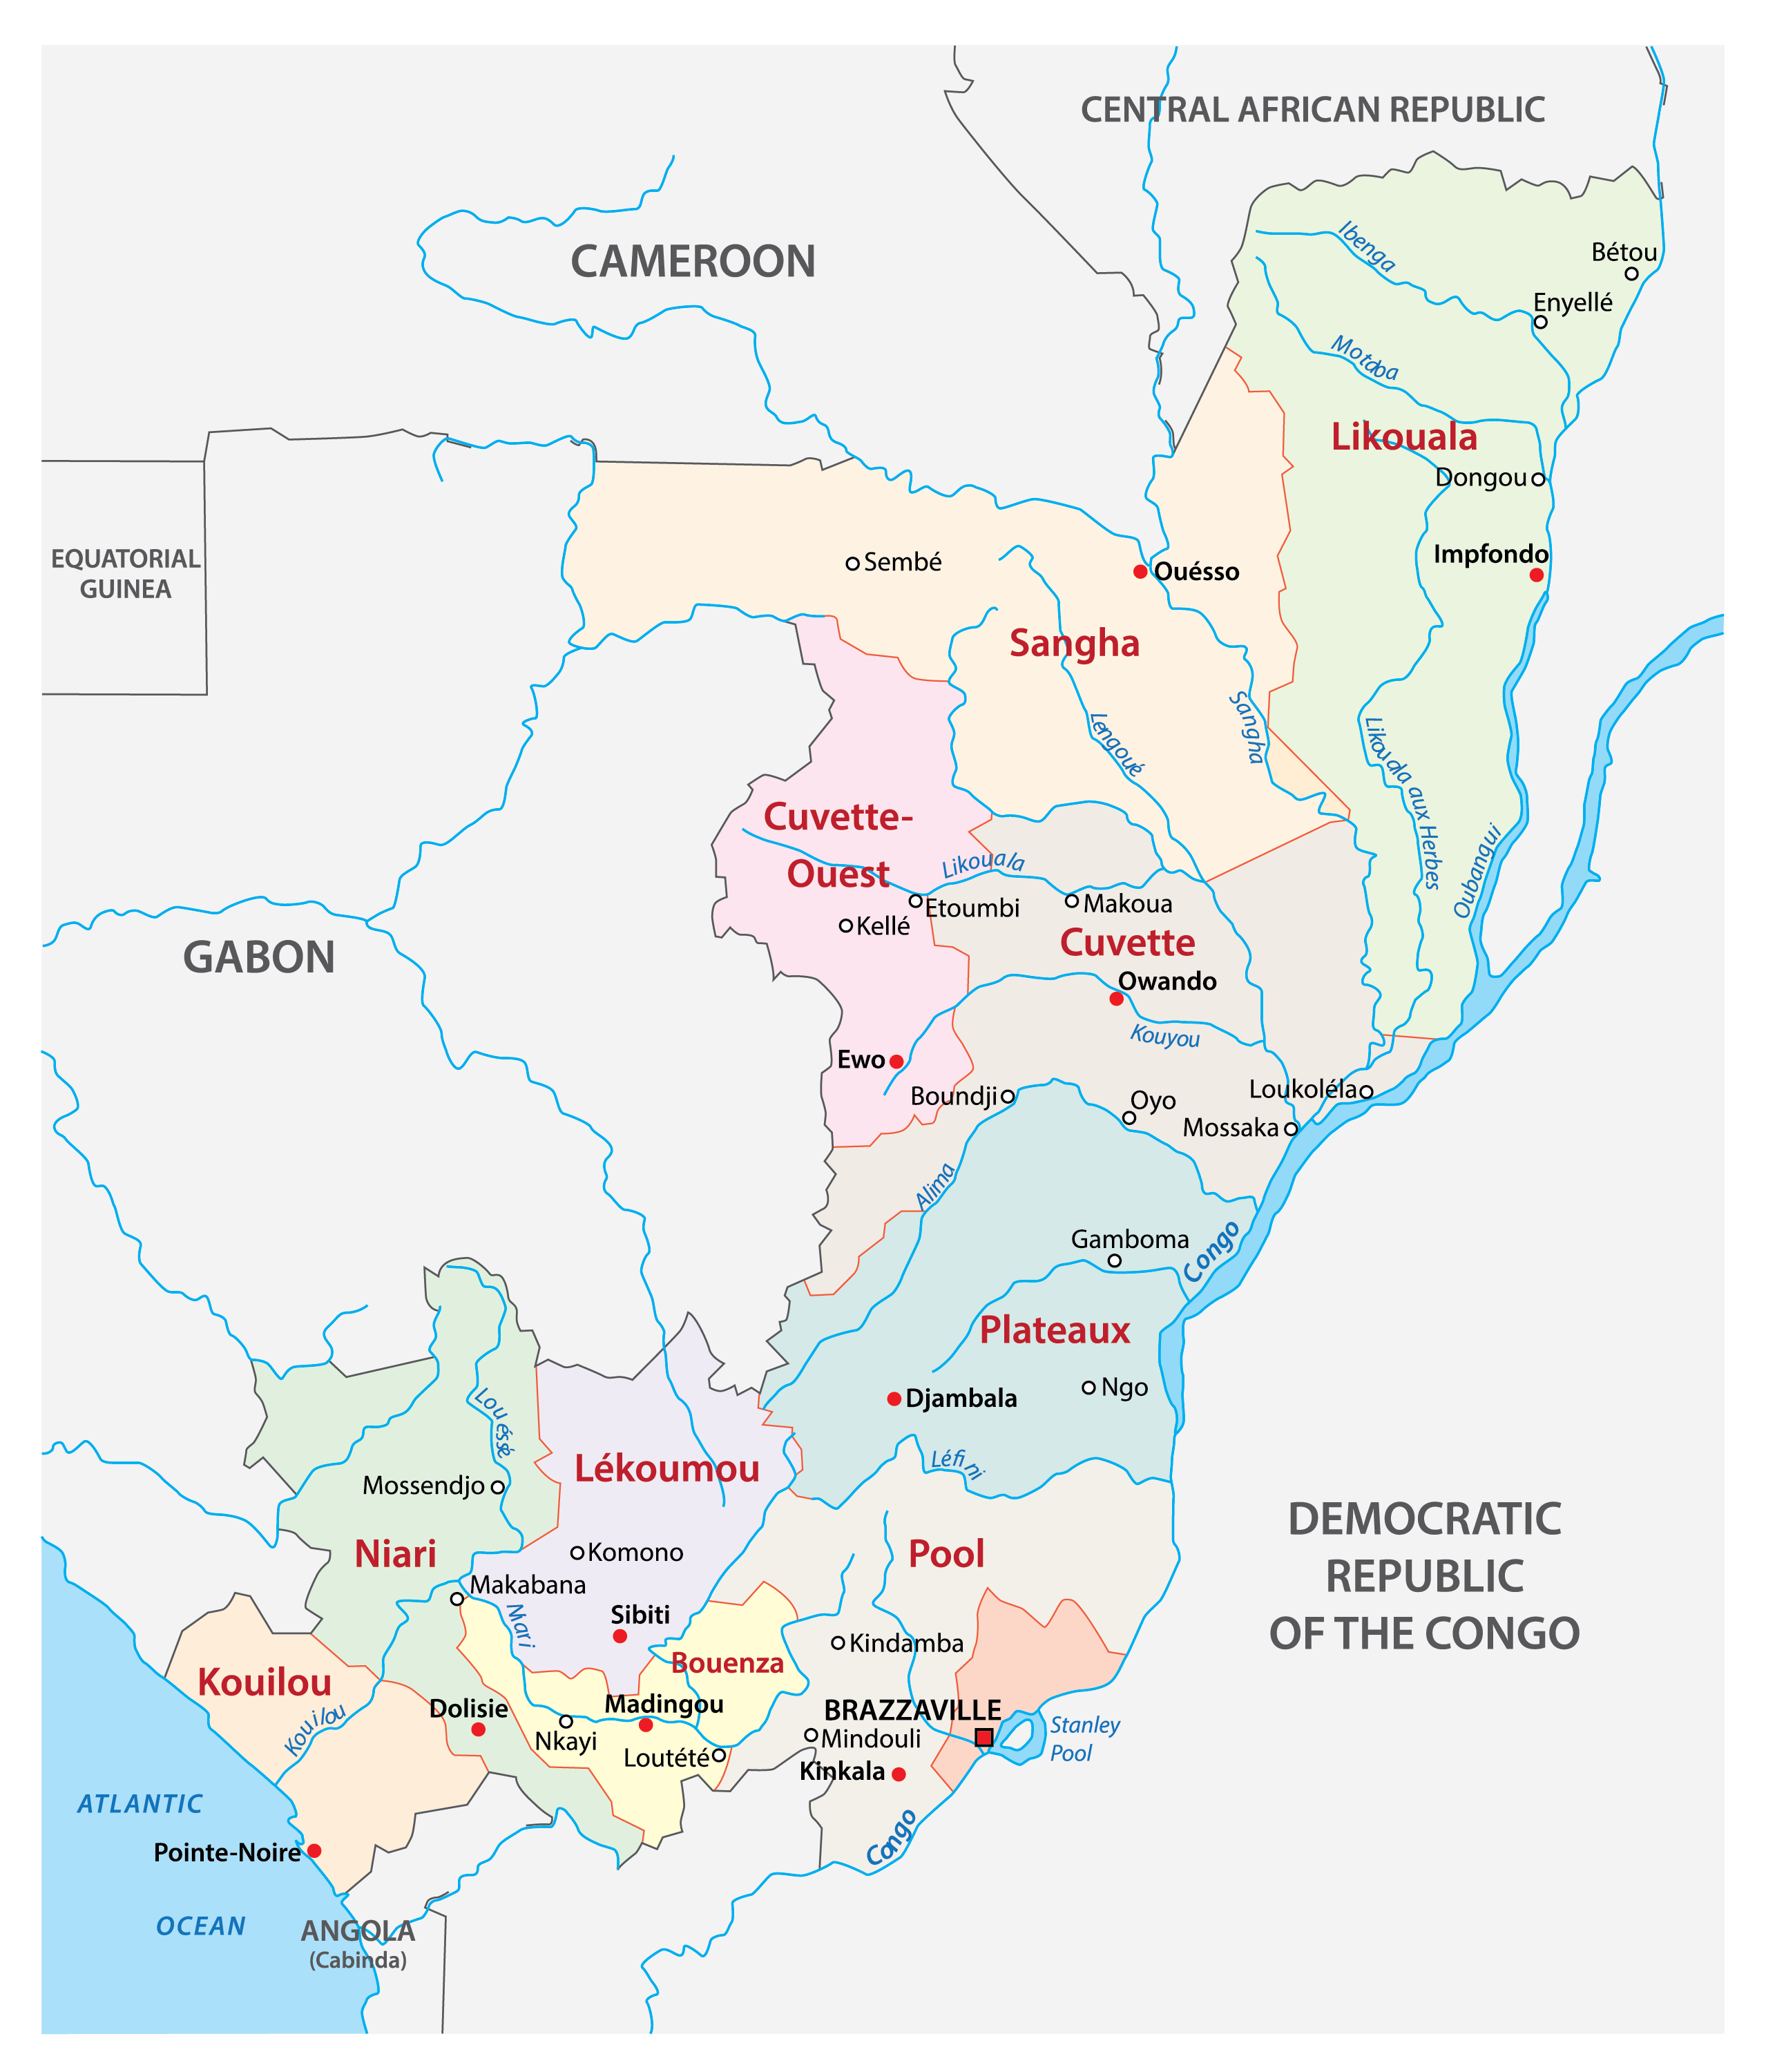 Political Map of Congo showing 12 departments, their capitals, and the national capital of Brazzaville.